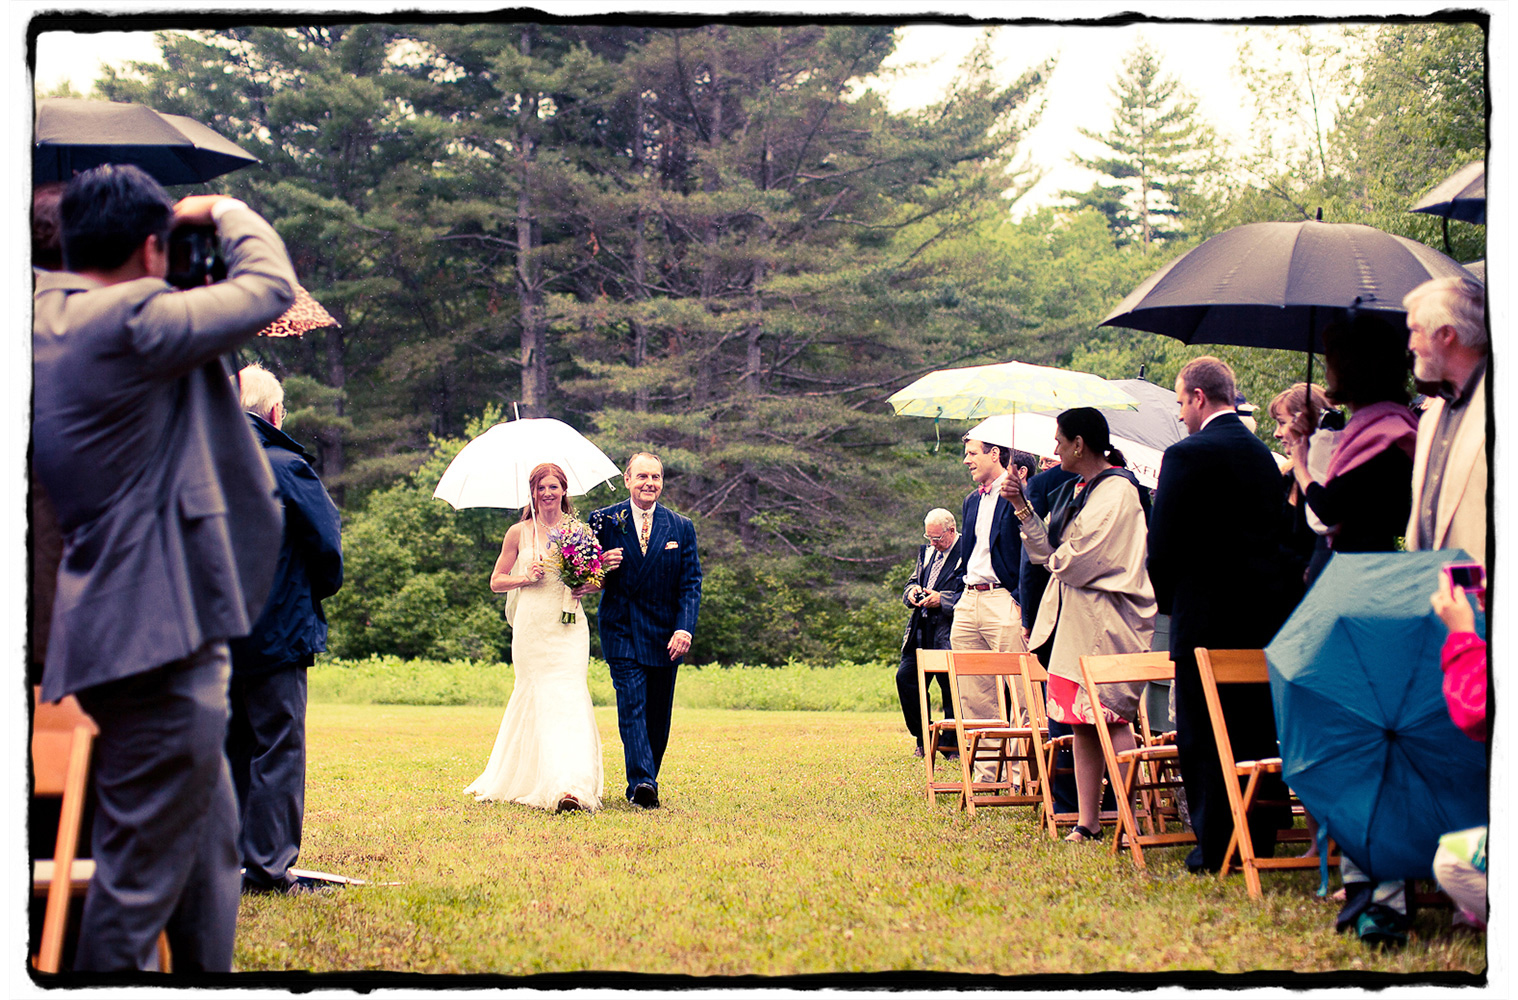 Rain couldn't stop this couple from having their ceremony in the great outdoors.